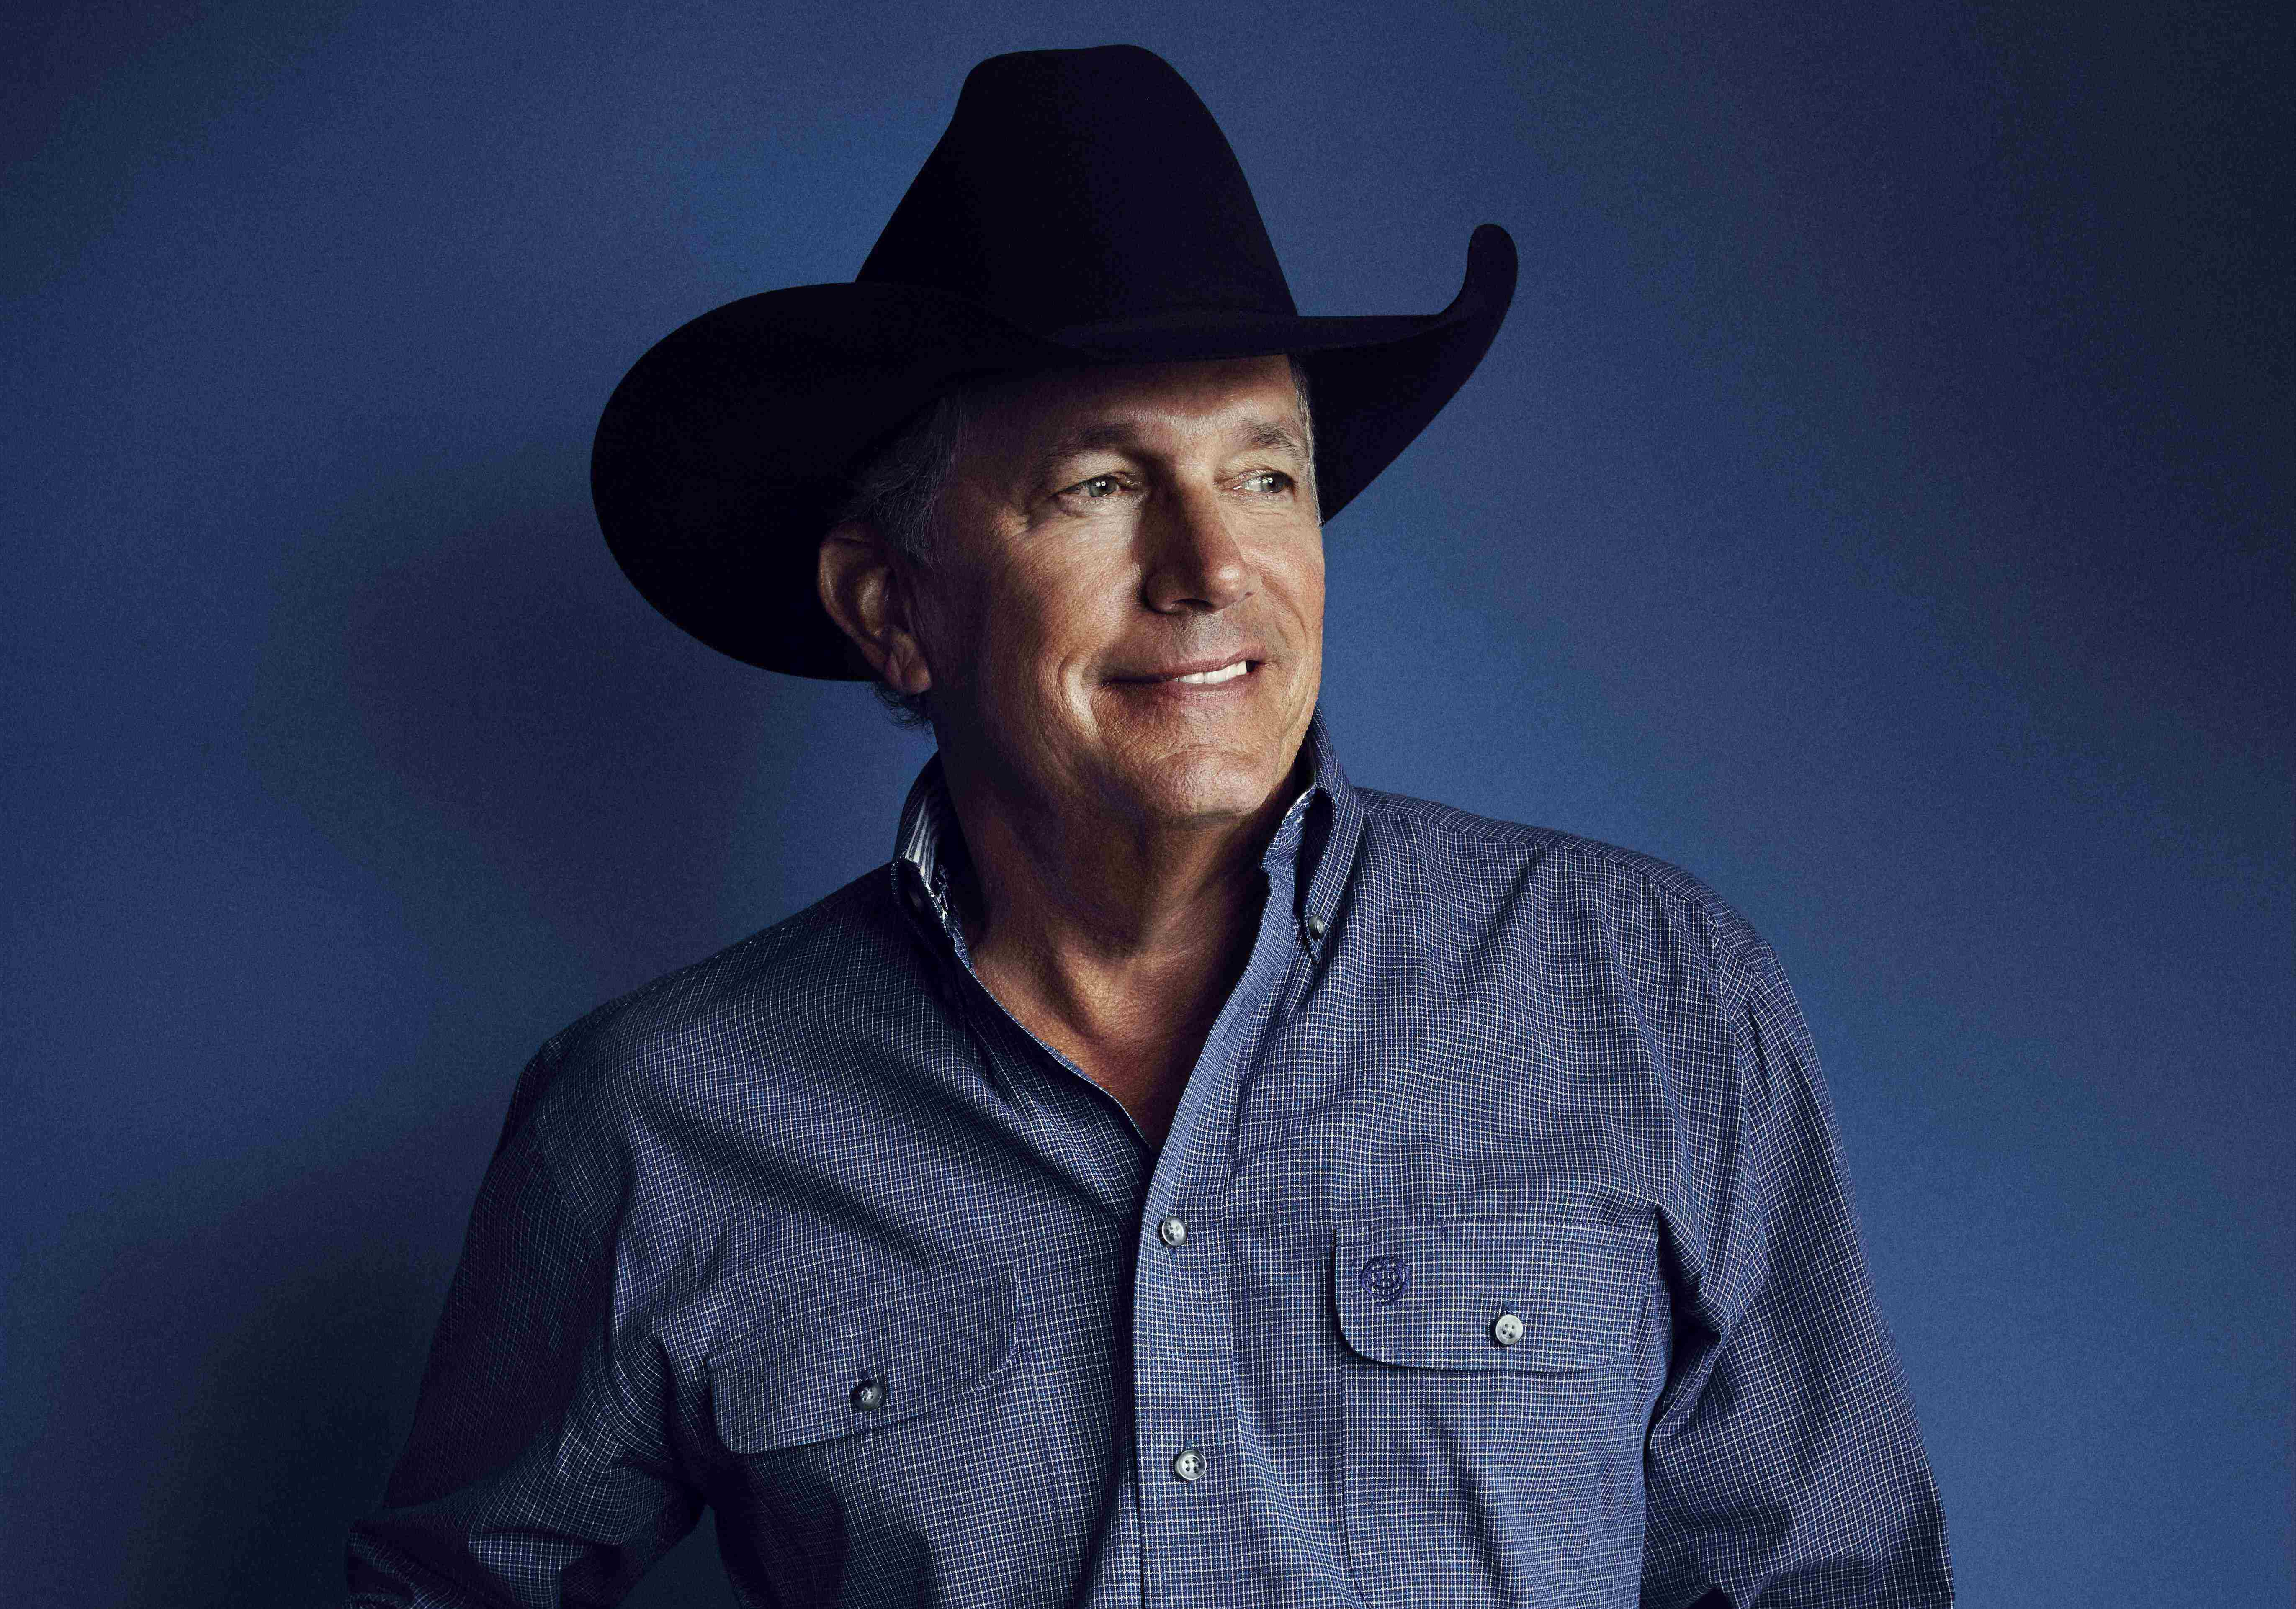 George Strait: Songs That Should've Been Singles